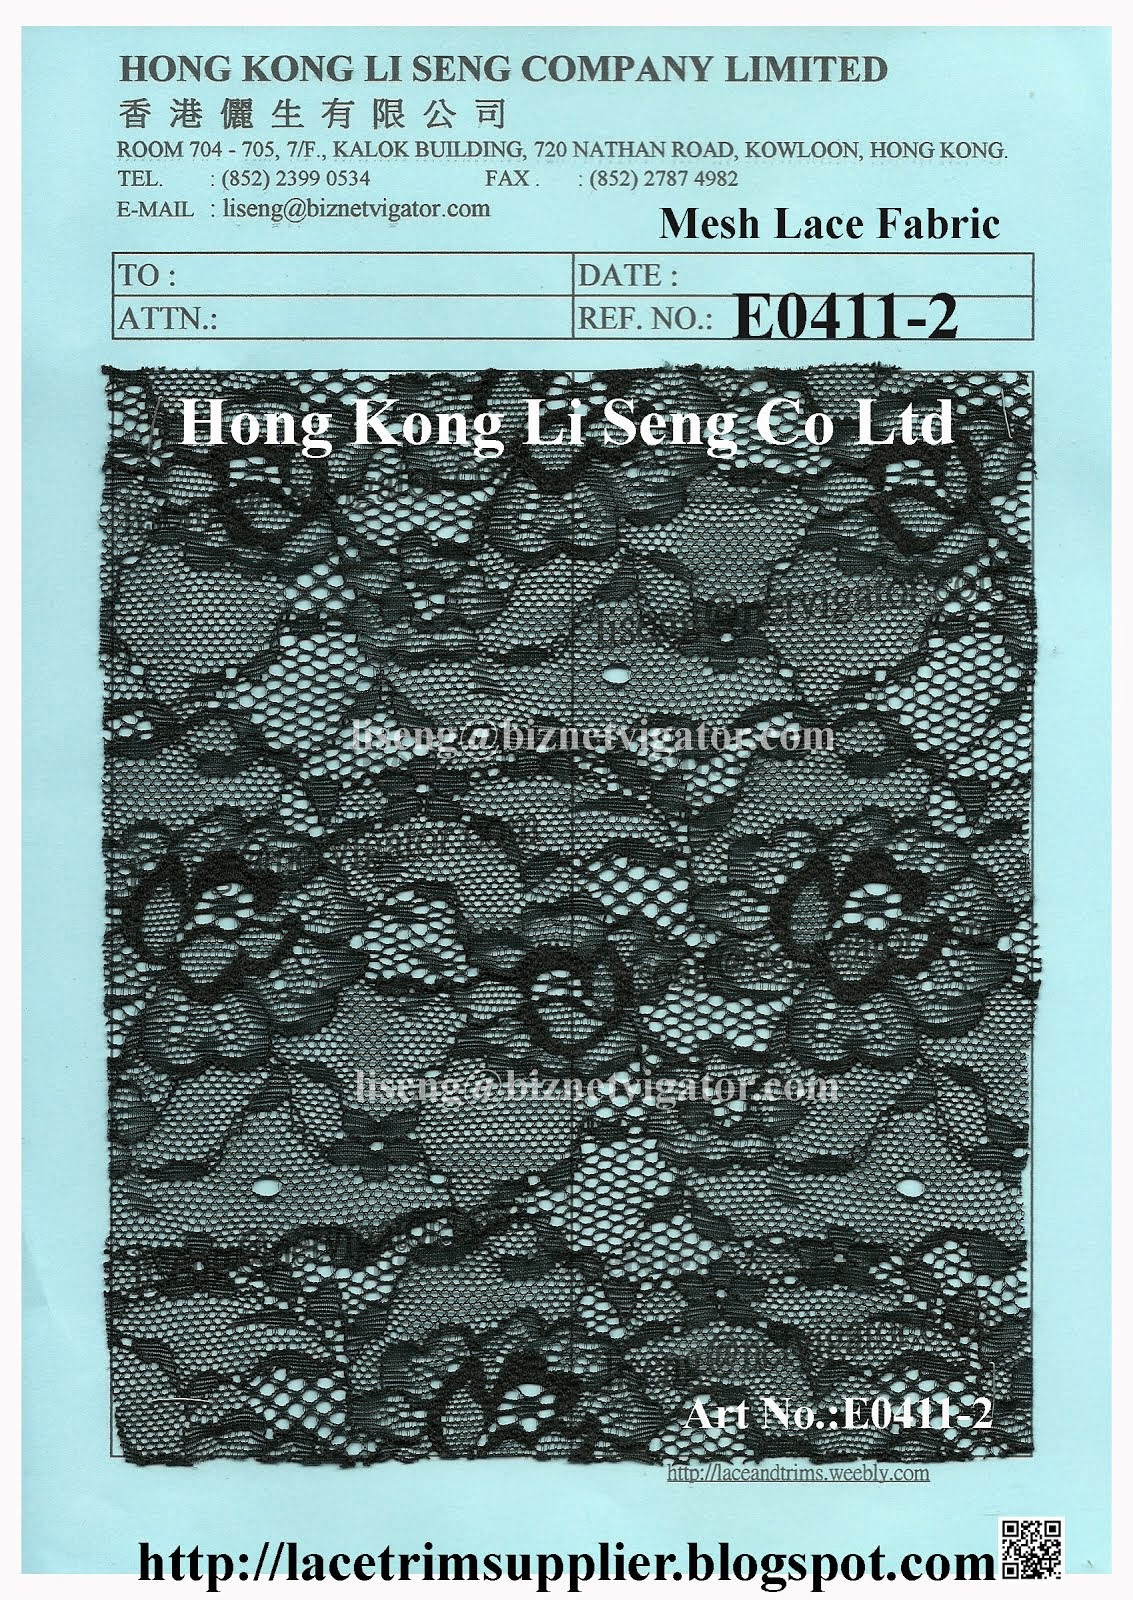 Mesh Lace Fabric Factory Wholesaler and Supplier - Hong Kong Li Seng Co Ltd